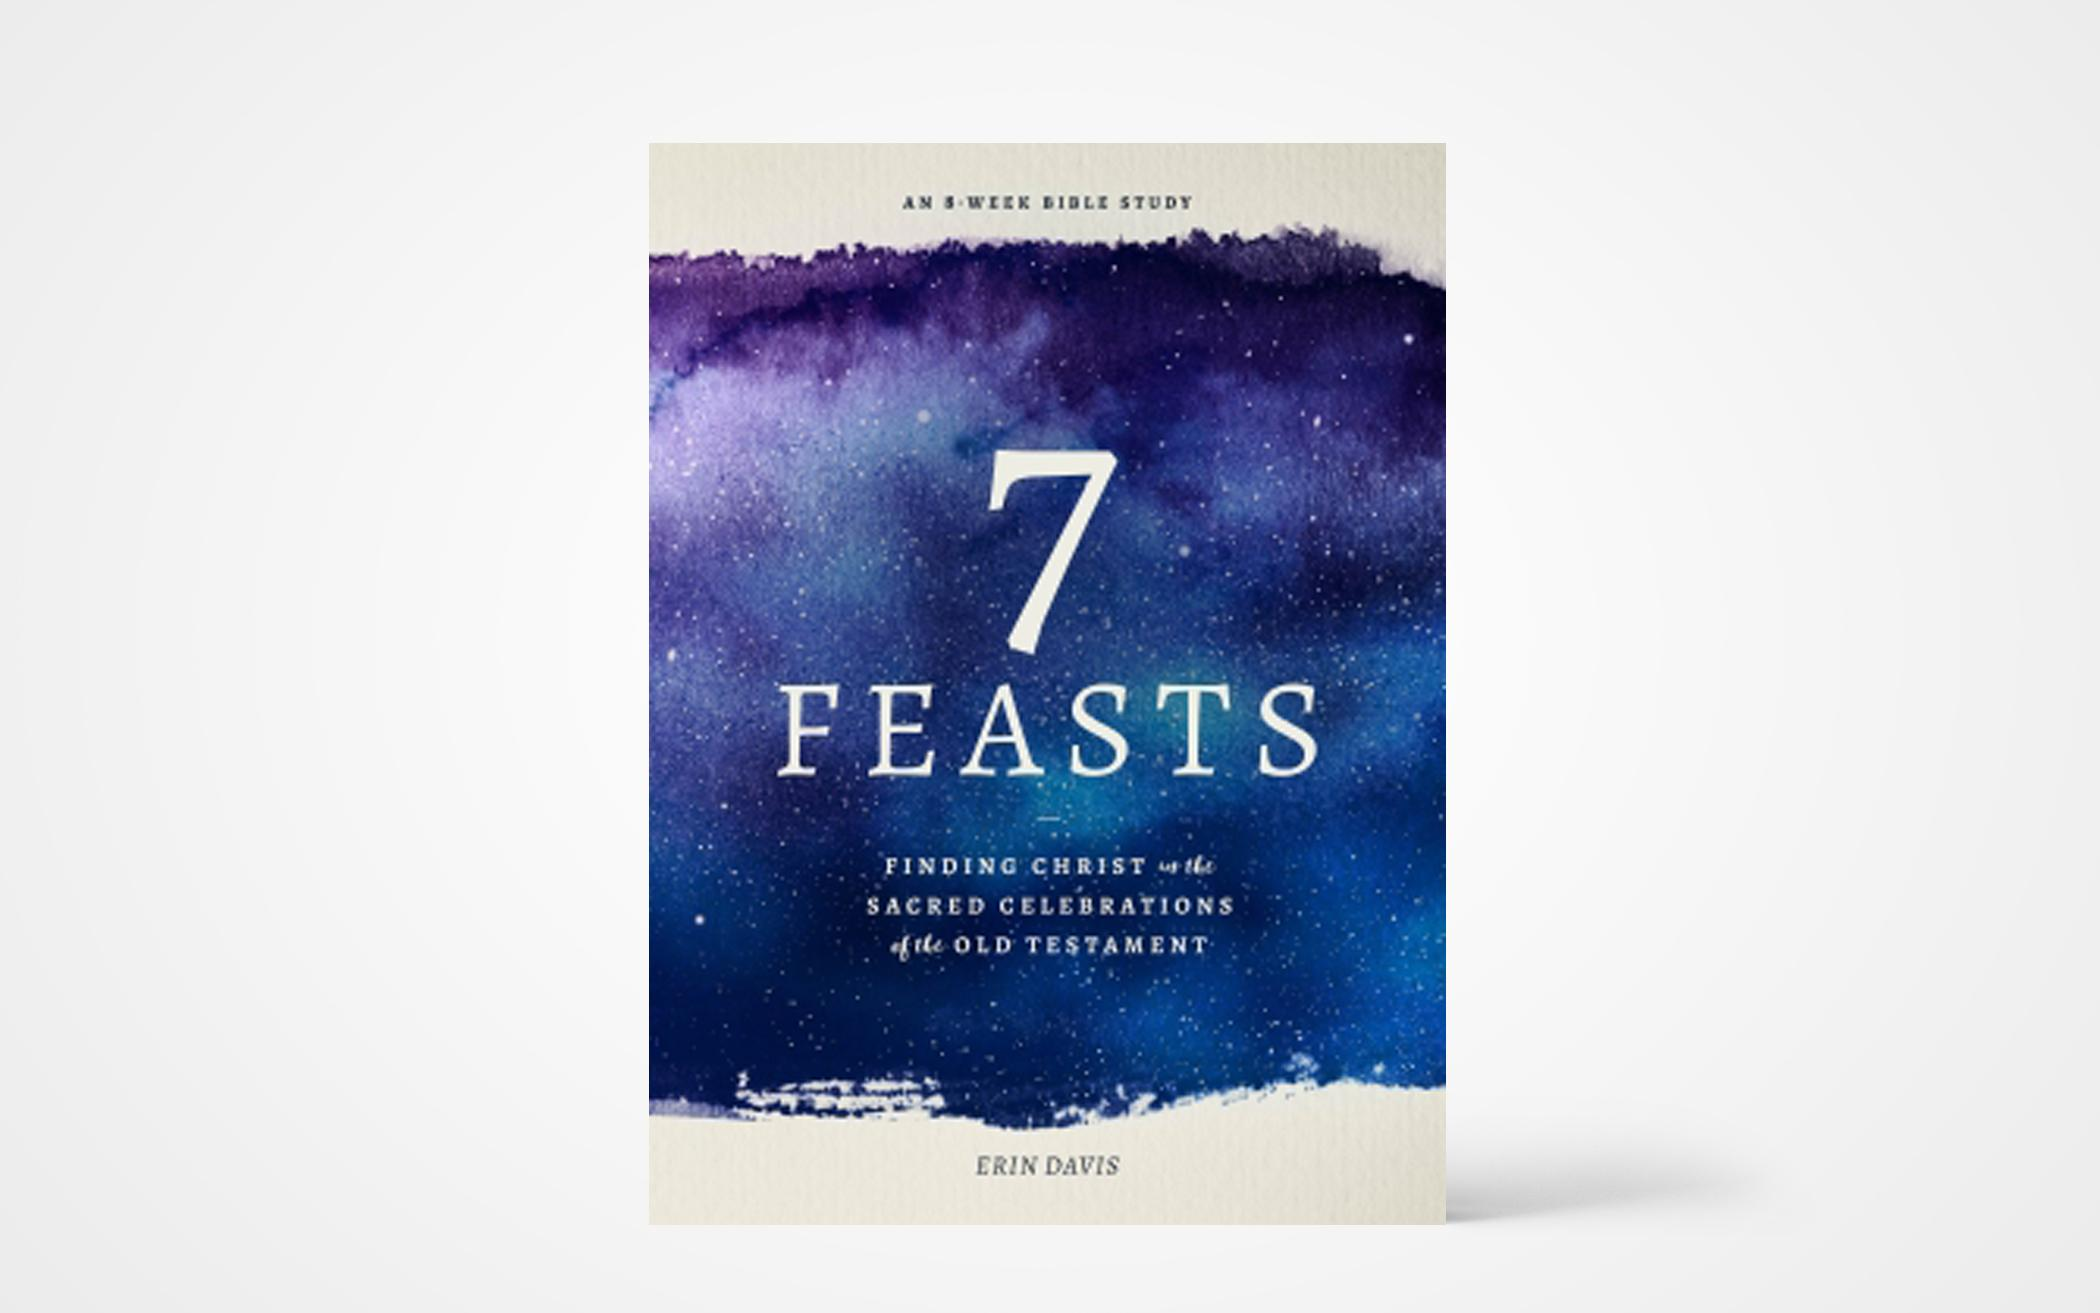 7 Feasts